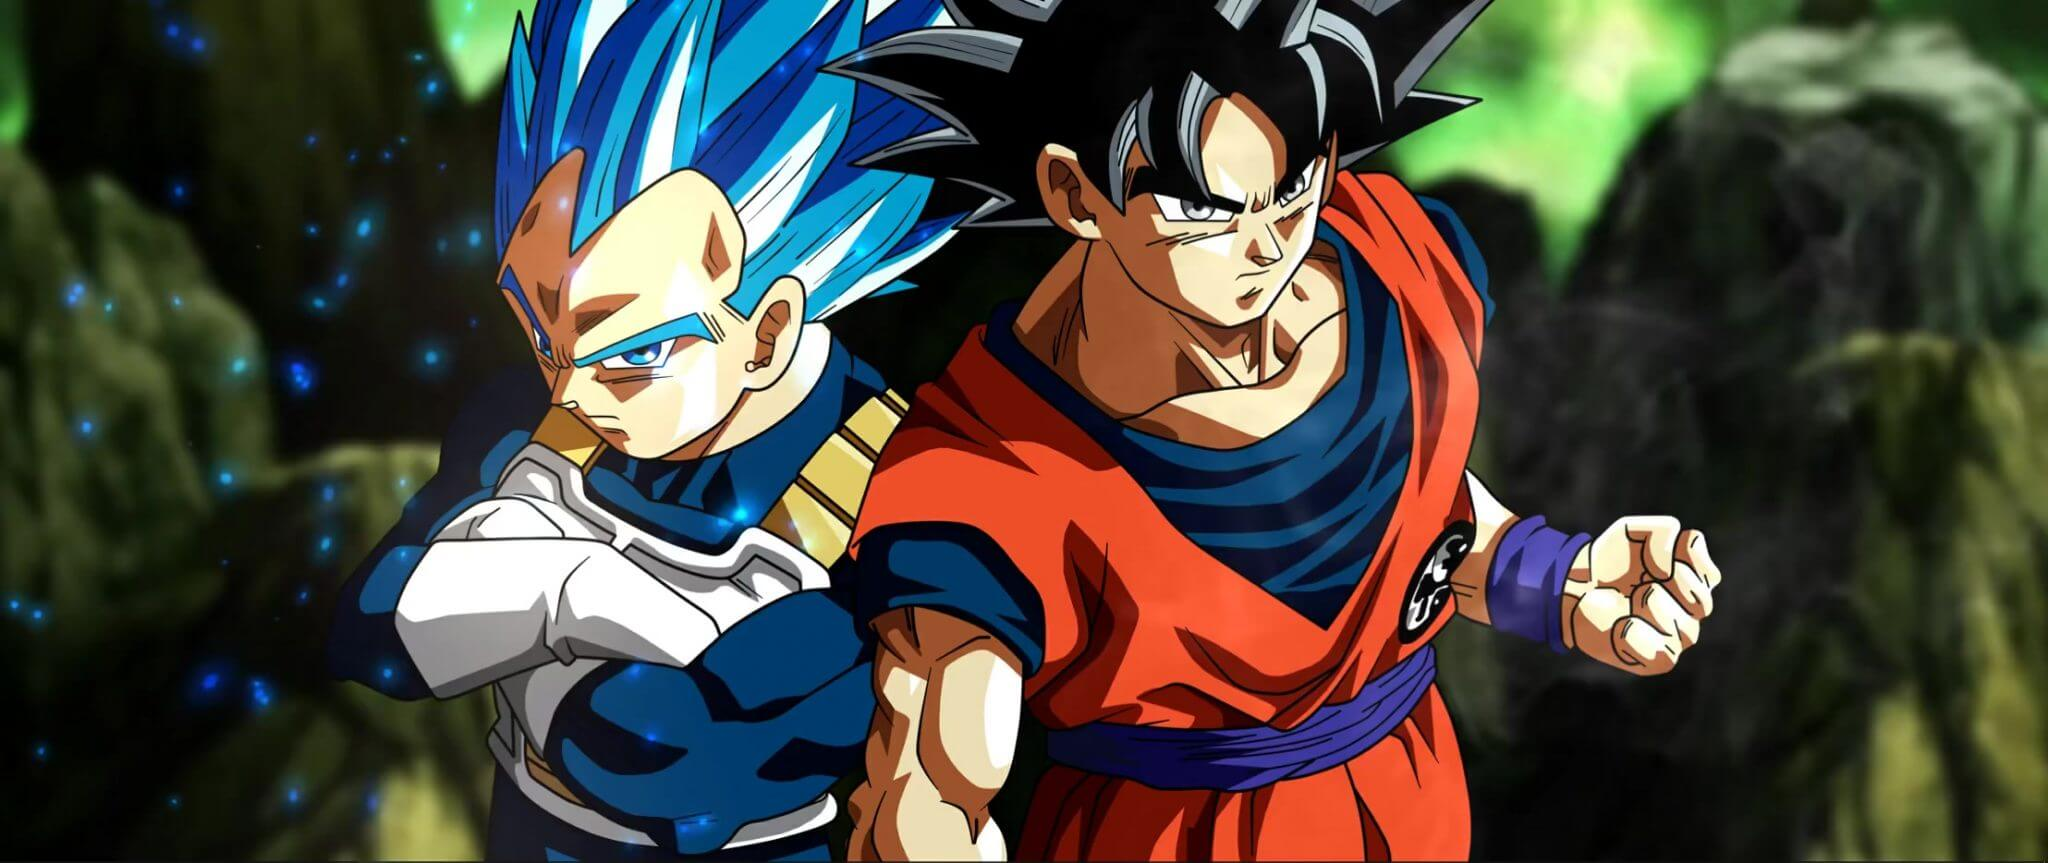 Dbs Wallpapers Top Free Dbs Backgrounds Wallpaperaccess